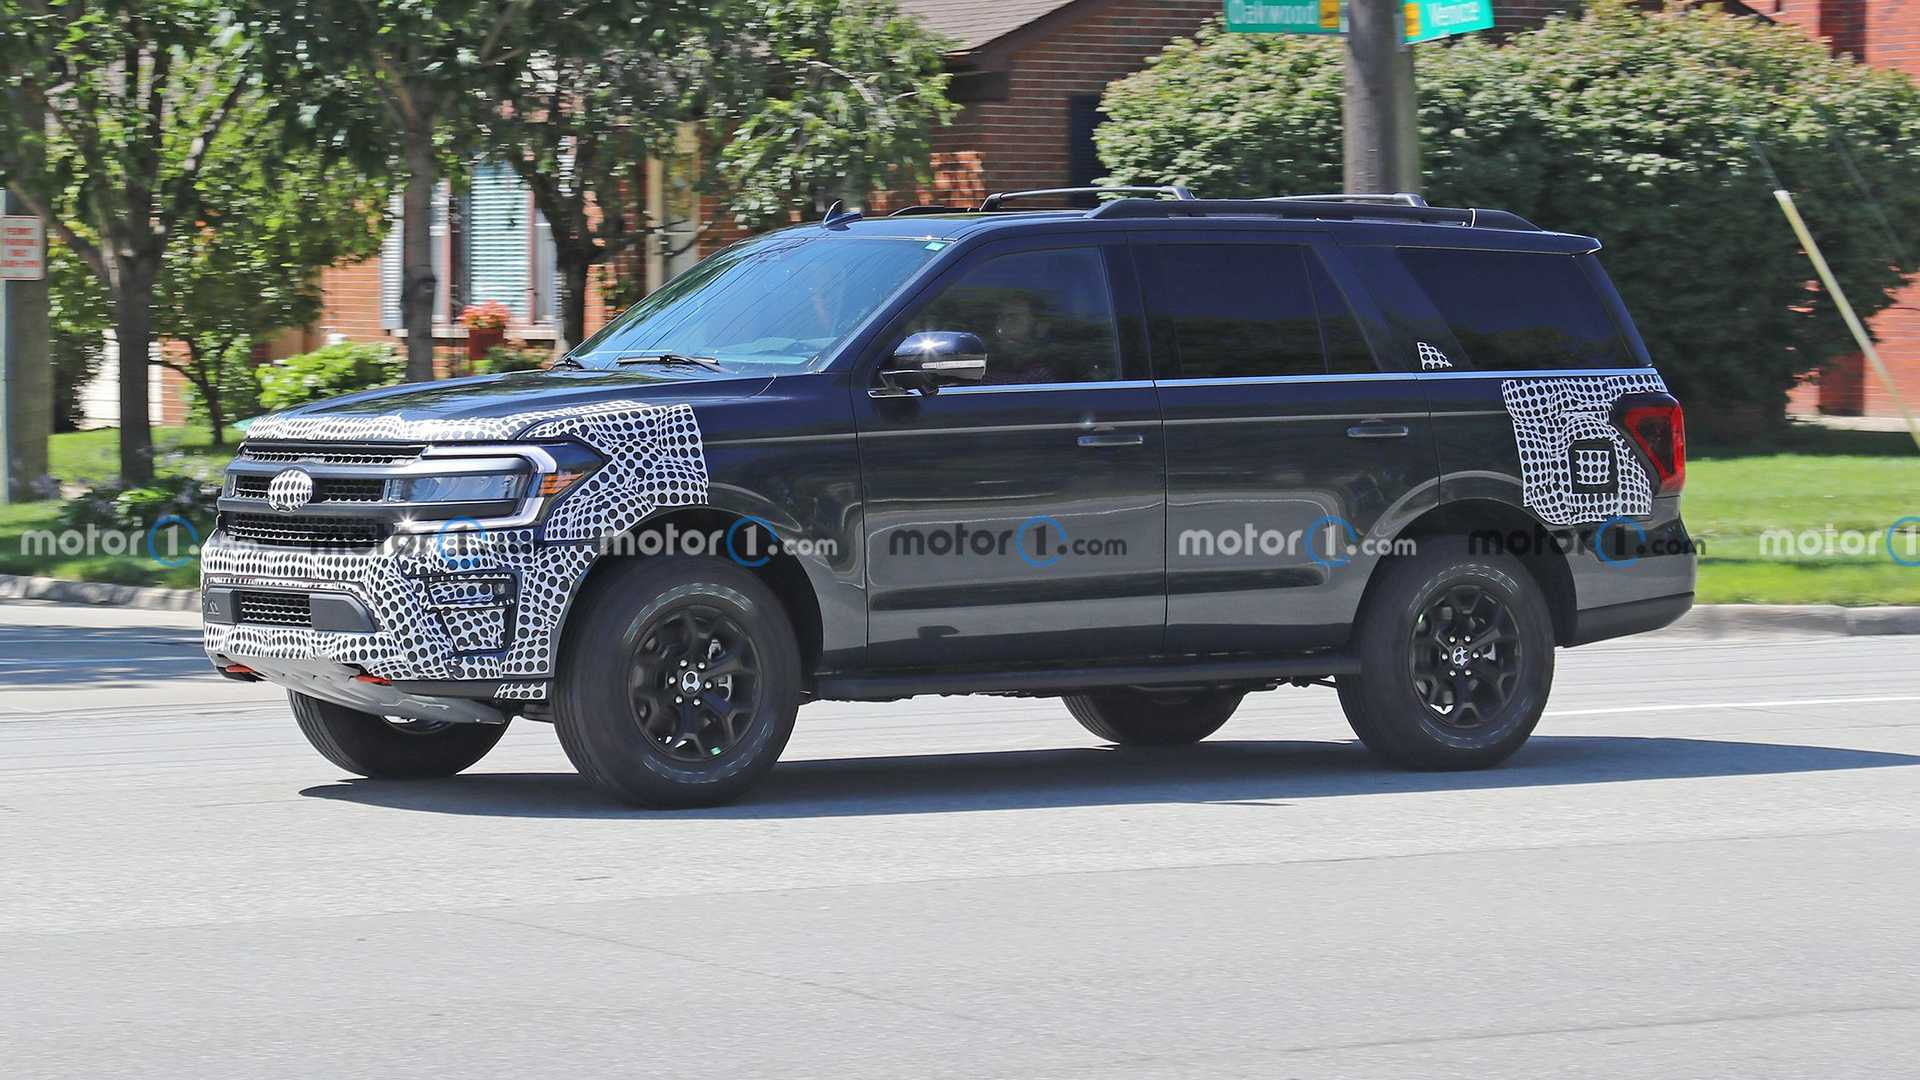 https://cdn.motor1.com/images/mgl/kpm3M/s6/2022-ford-expedition-timberline-new-spy-photo.jpg